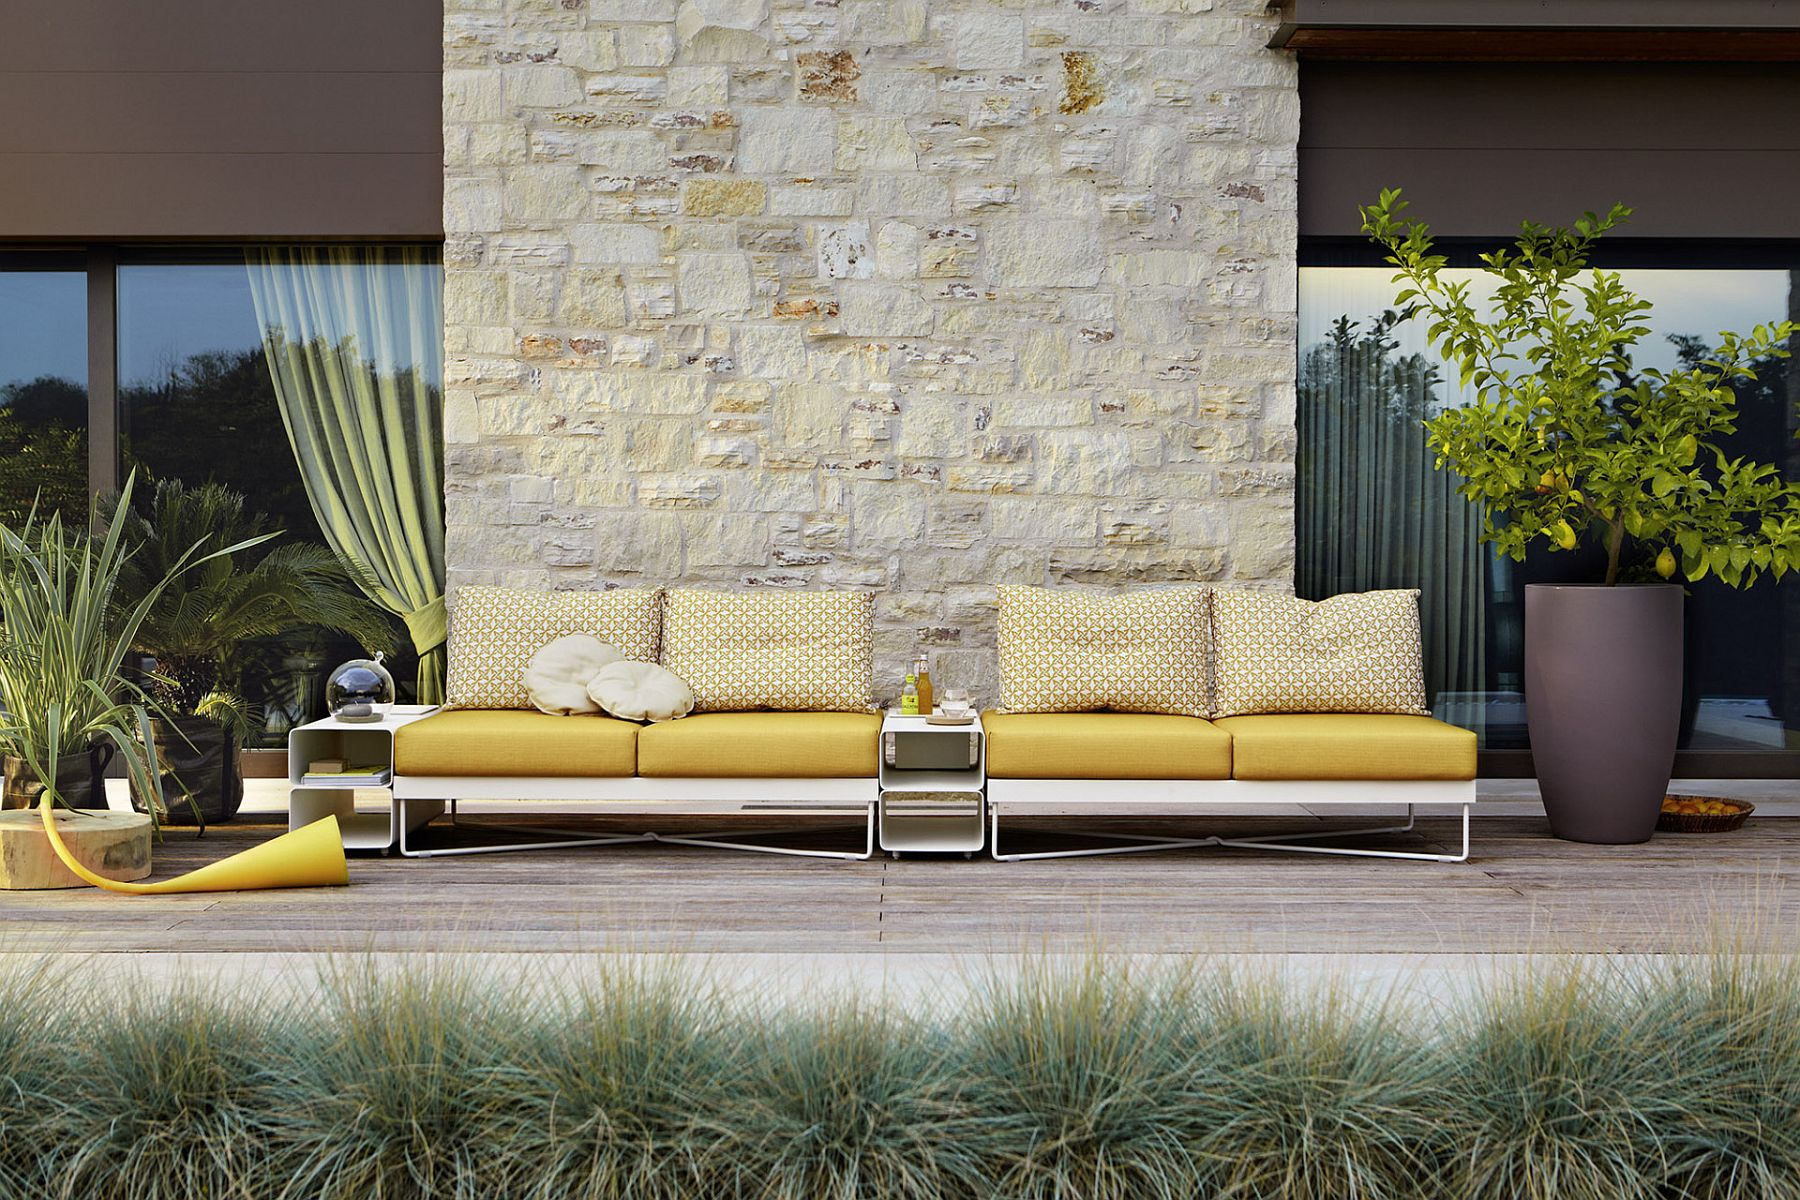 A touch of yellow to revitalize your poolside deck